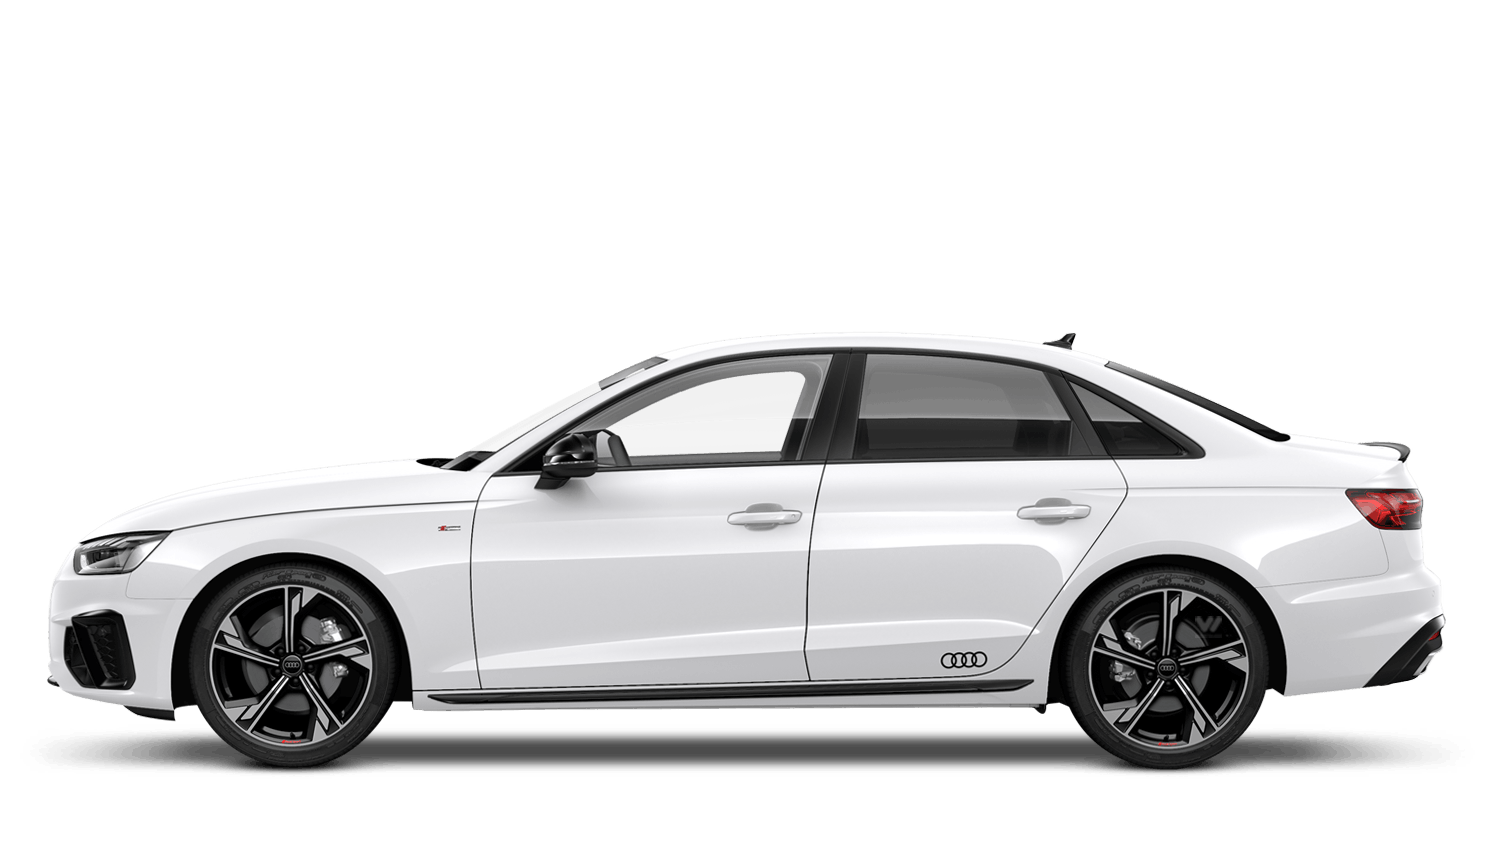 Audi A4 Black Edition 2020 White Supercars Gallery